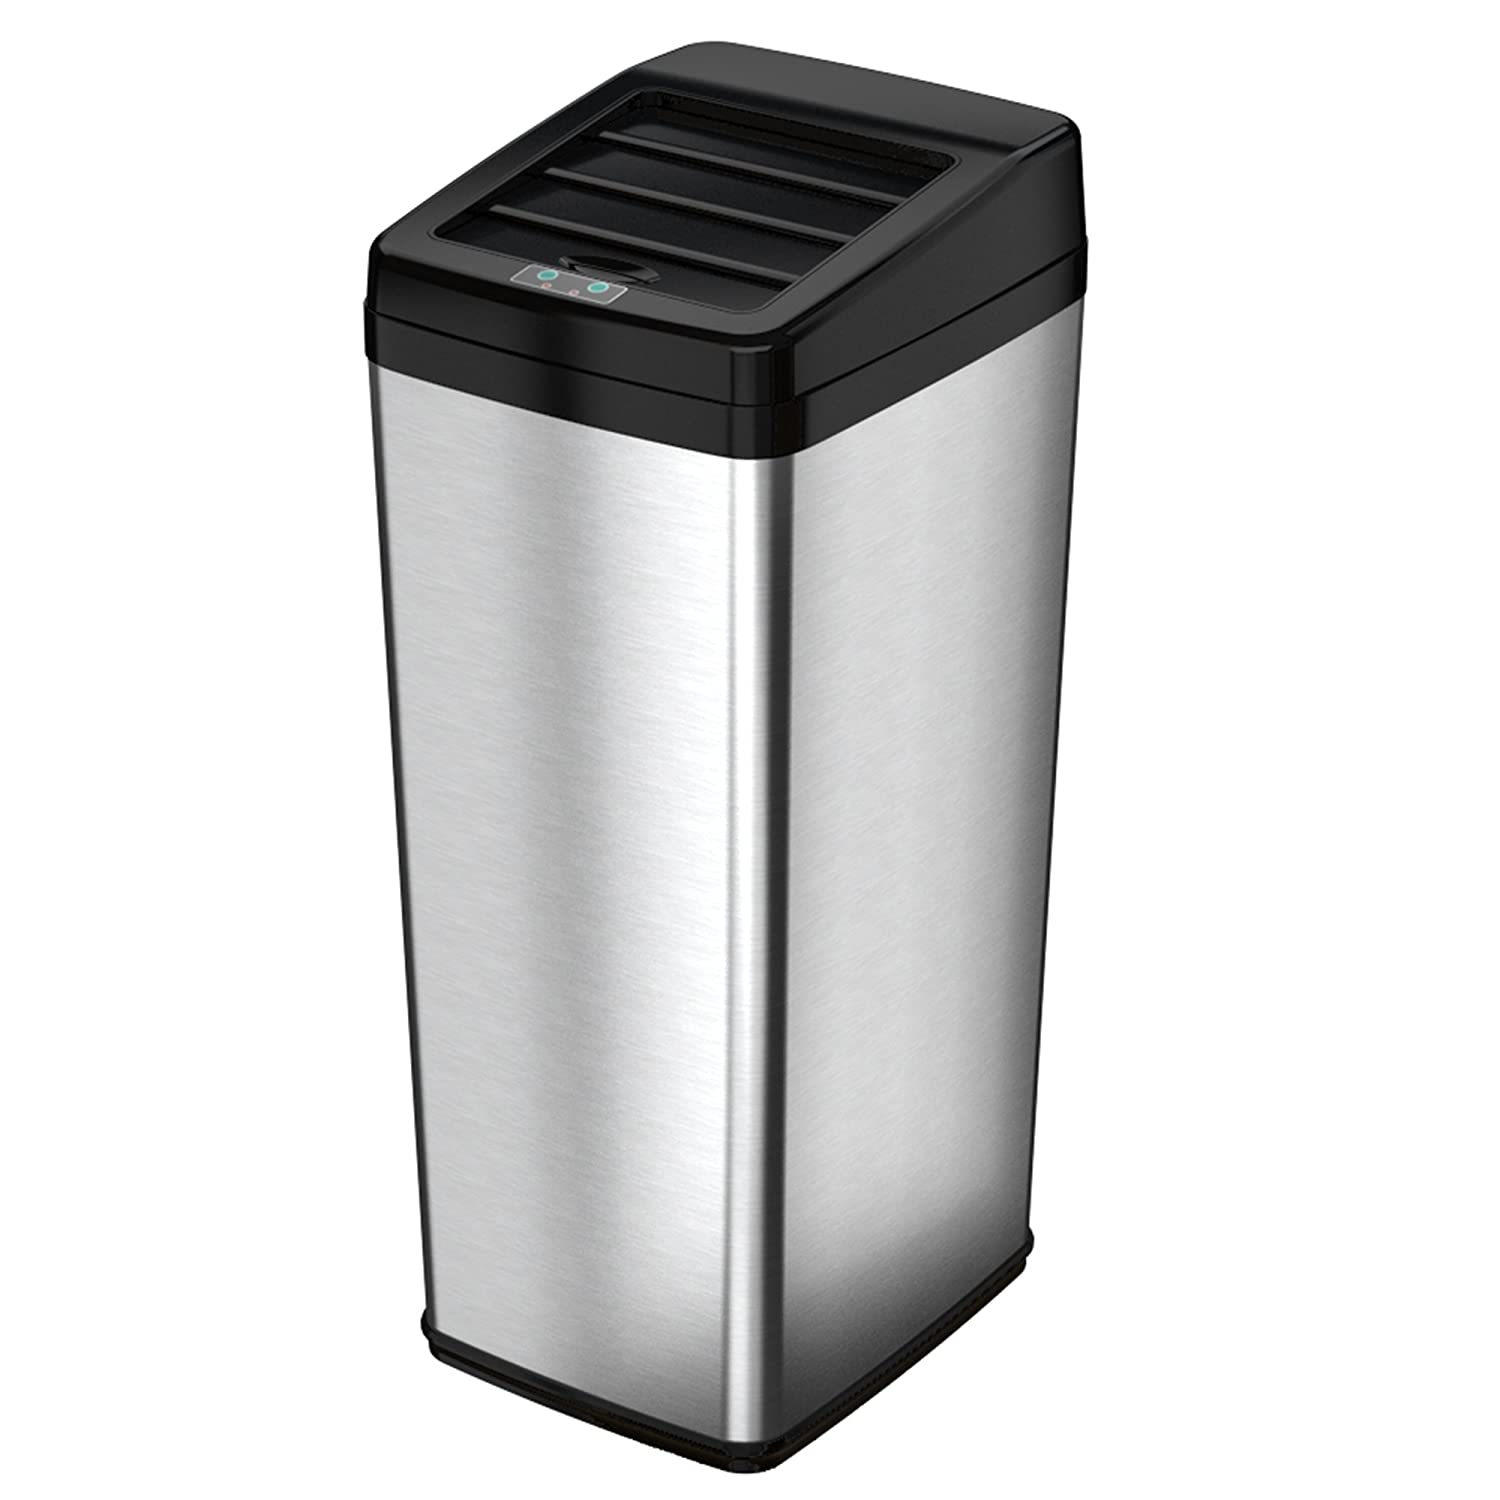 Amazon.com: ITouchless Sliding Lid Automatic Touchless Sensor Trash Can U2013  14 Gallon / 52 Liter U2013 Stainless Steel U2013 Kitchen Trash Can: Home U0026 Kitchen